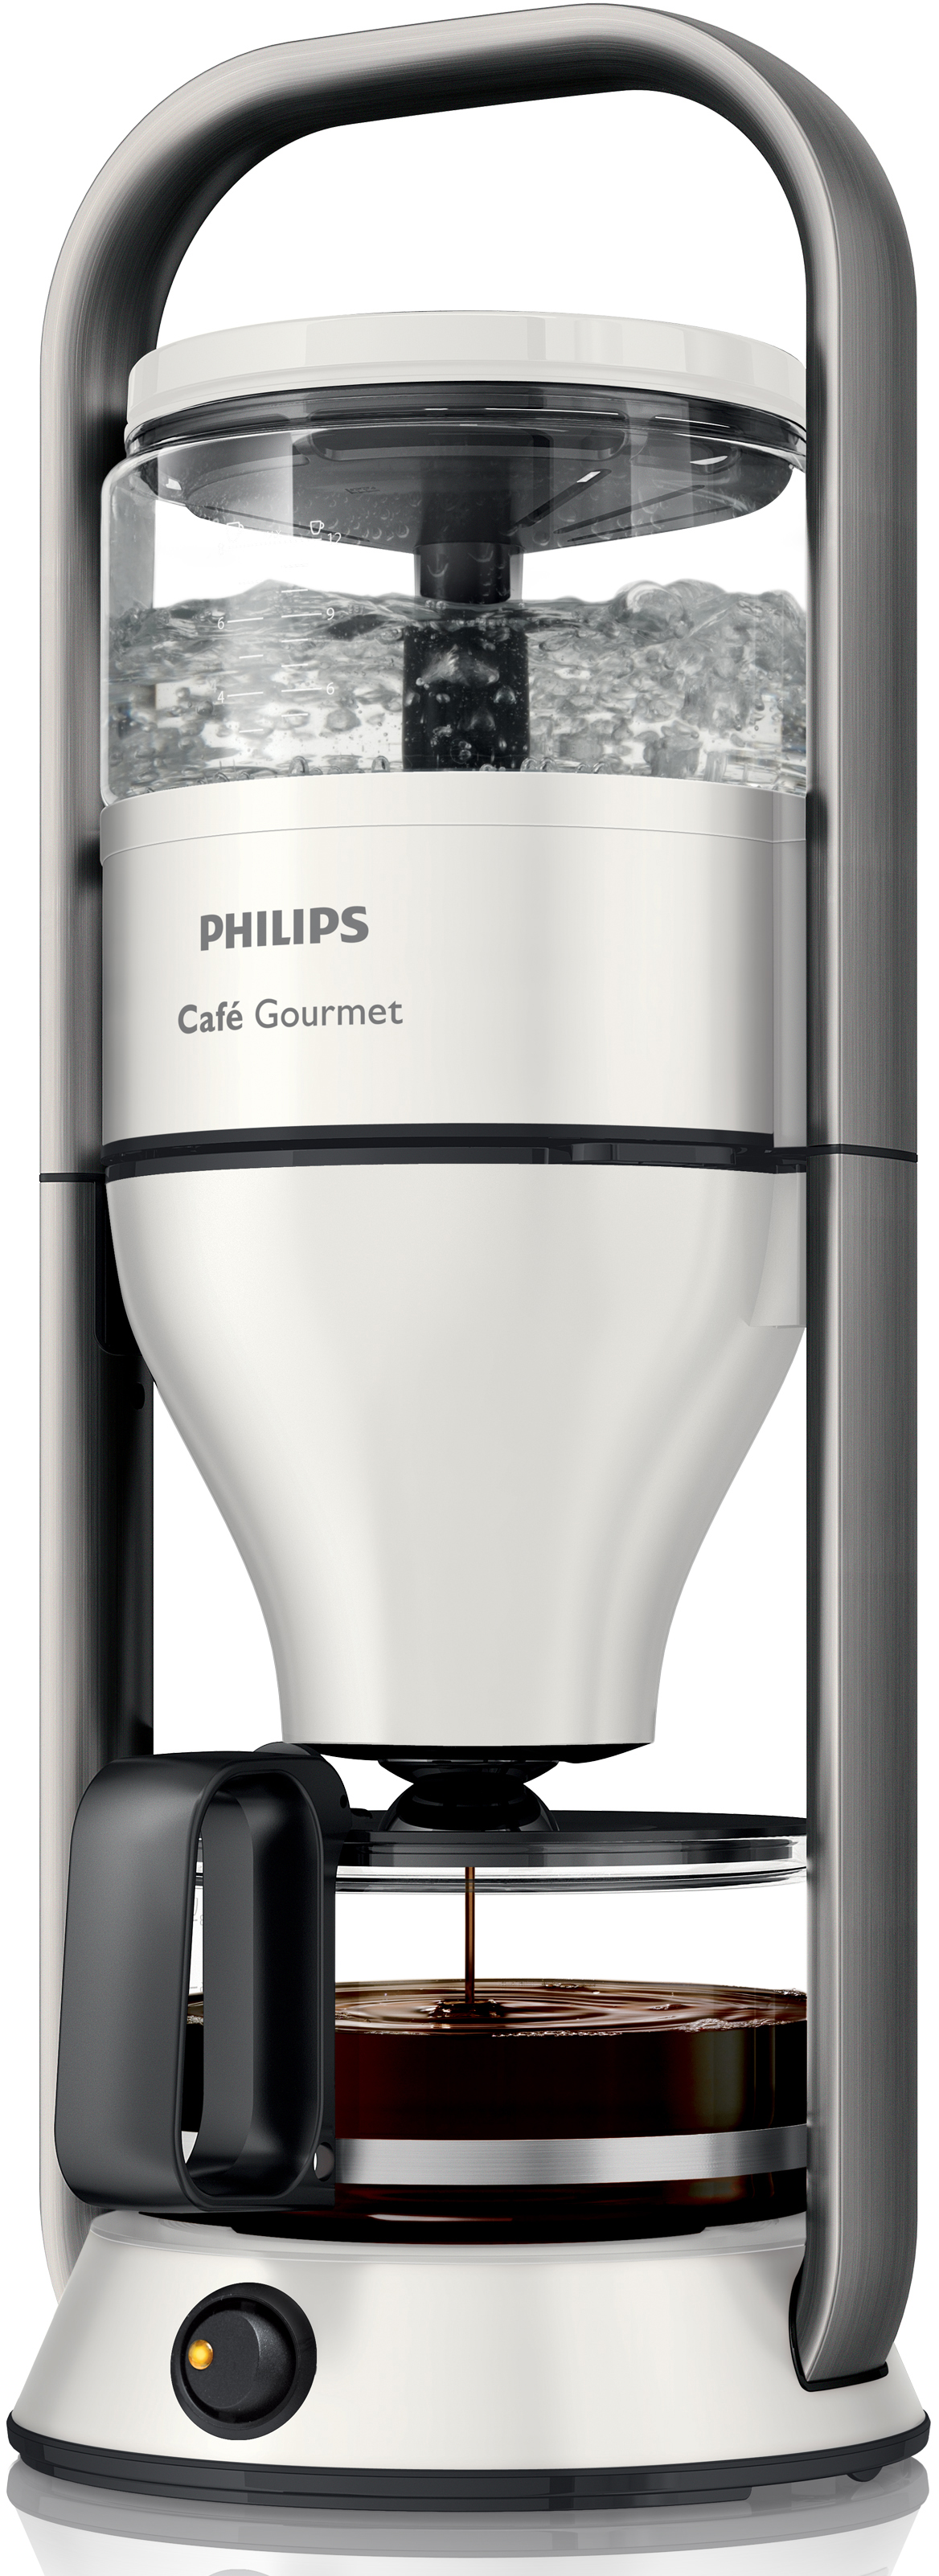 philips kaffeemaschine caf gourmet hd5407 10 filterkaffeemaschine direkt br h prinzip. Black Bedroom Furniture Sets. Home Design Ideas